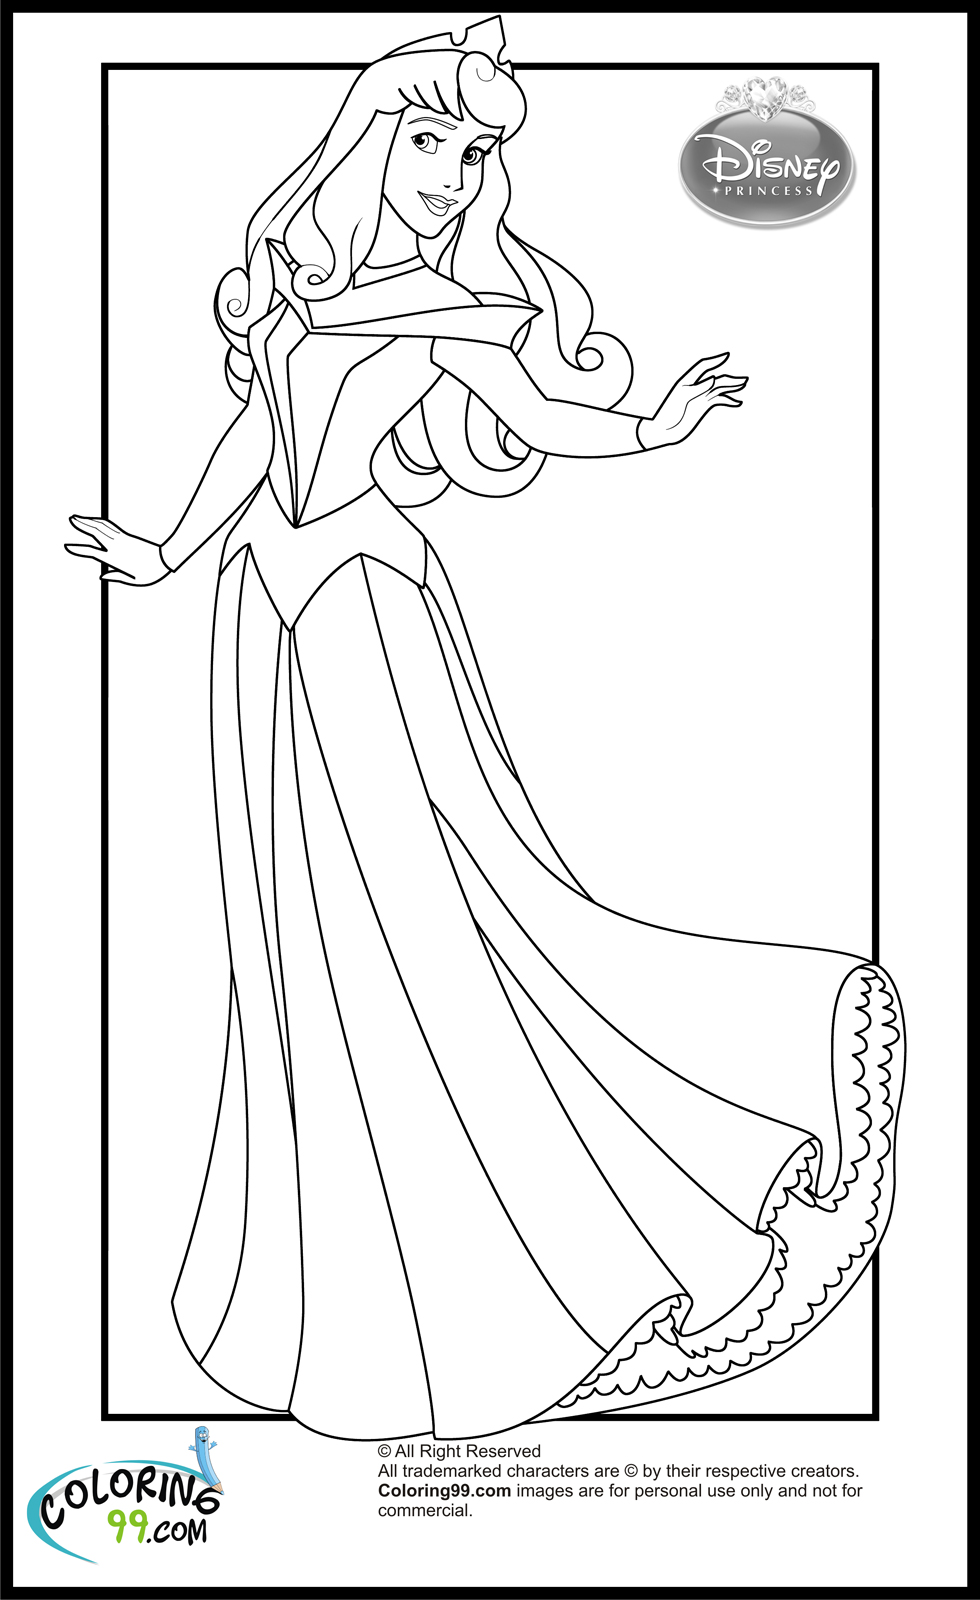 disney ariel coloring pages may 2013 team colors ariel coloring pages disney